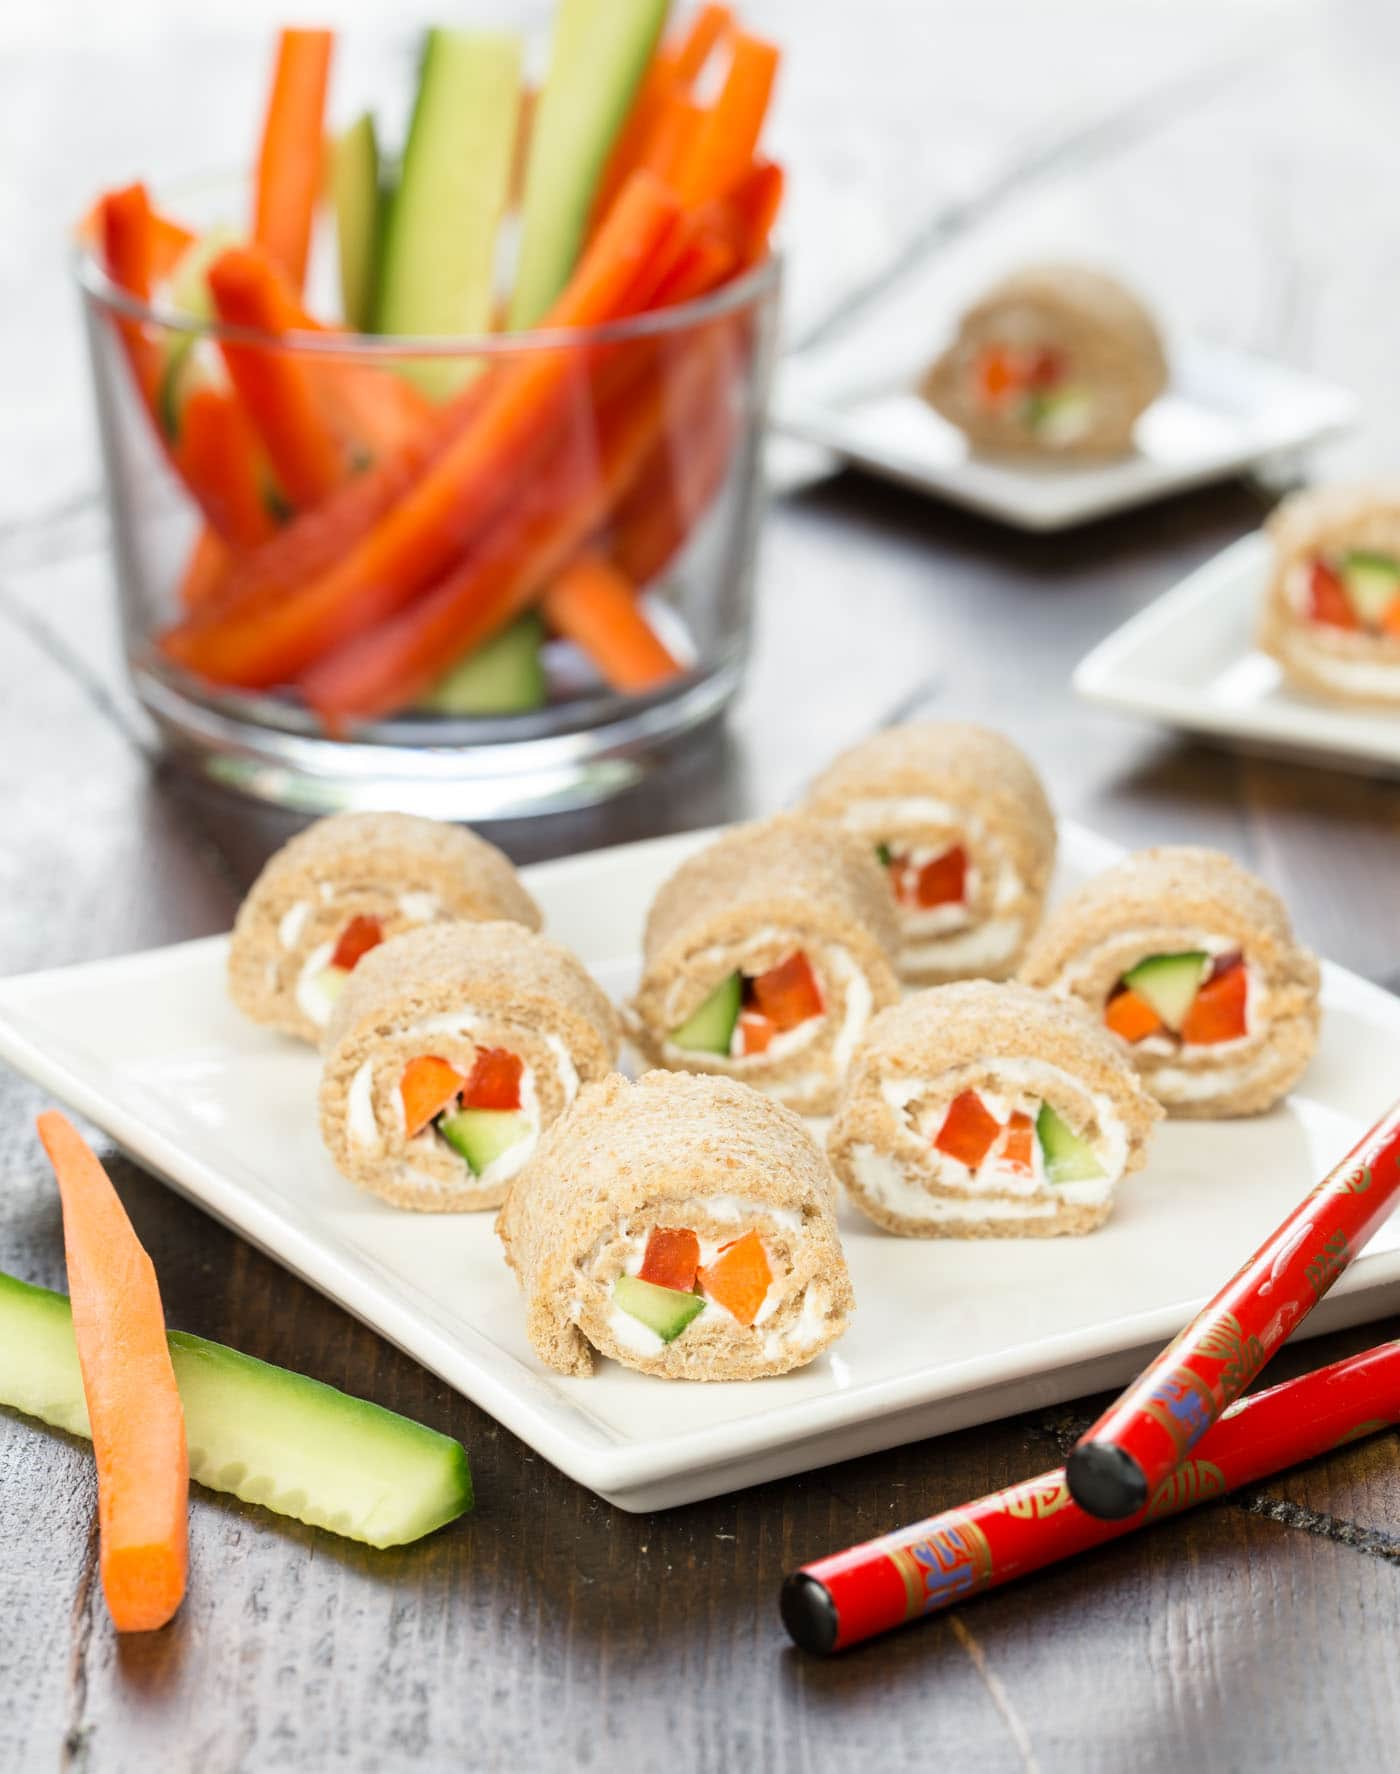 These Veggie Sushi Rolls are a simple, easy snack for kids. Swap in their favorite veggies or use hummus instead of cream cheese. Check out the rest of our Smart Summer Snacks for Kids!